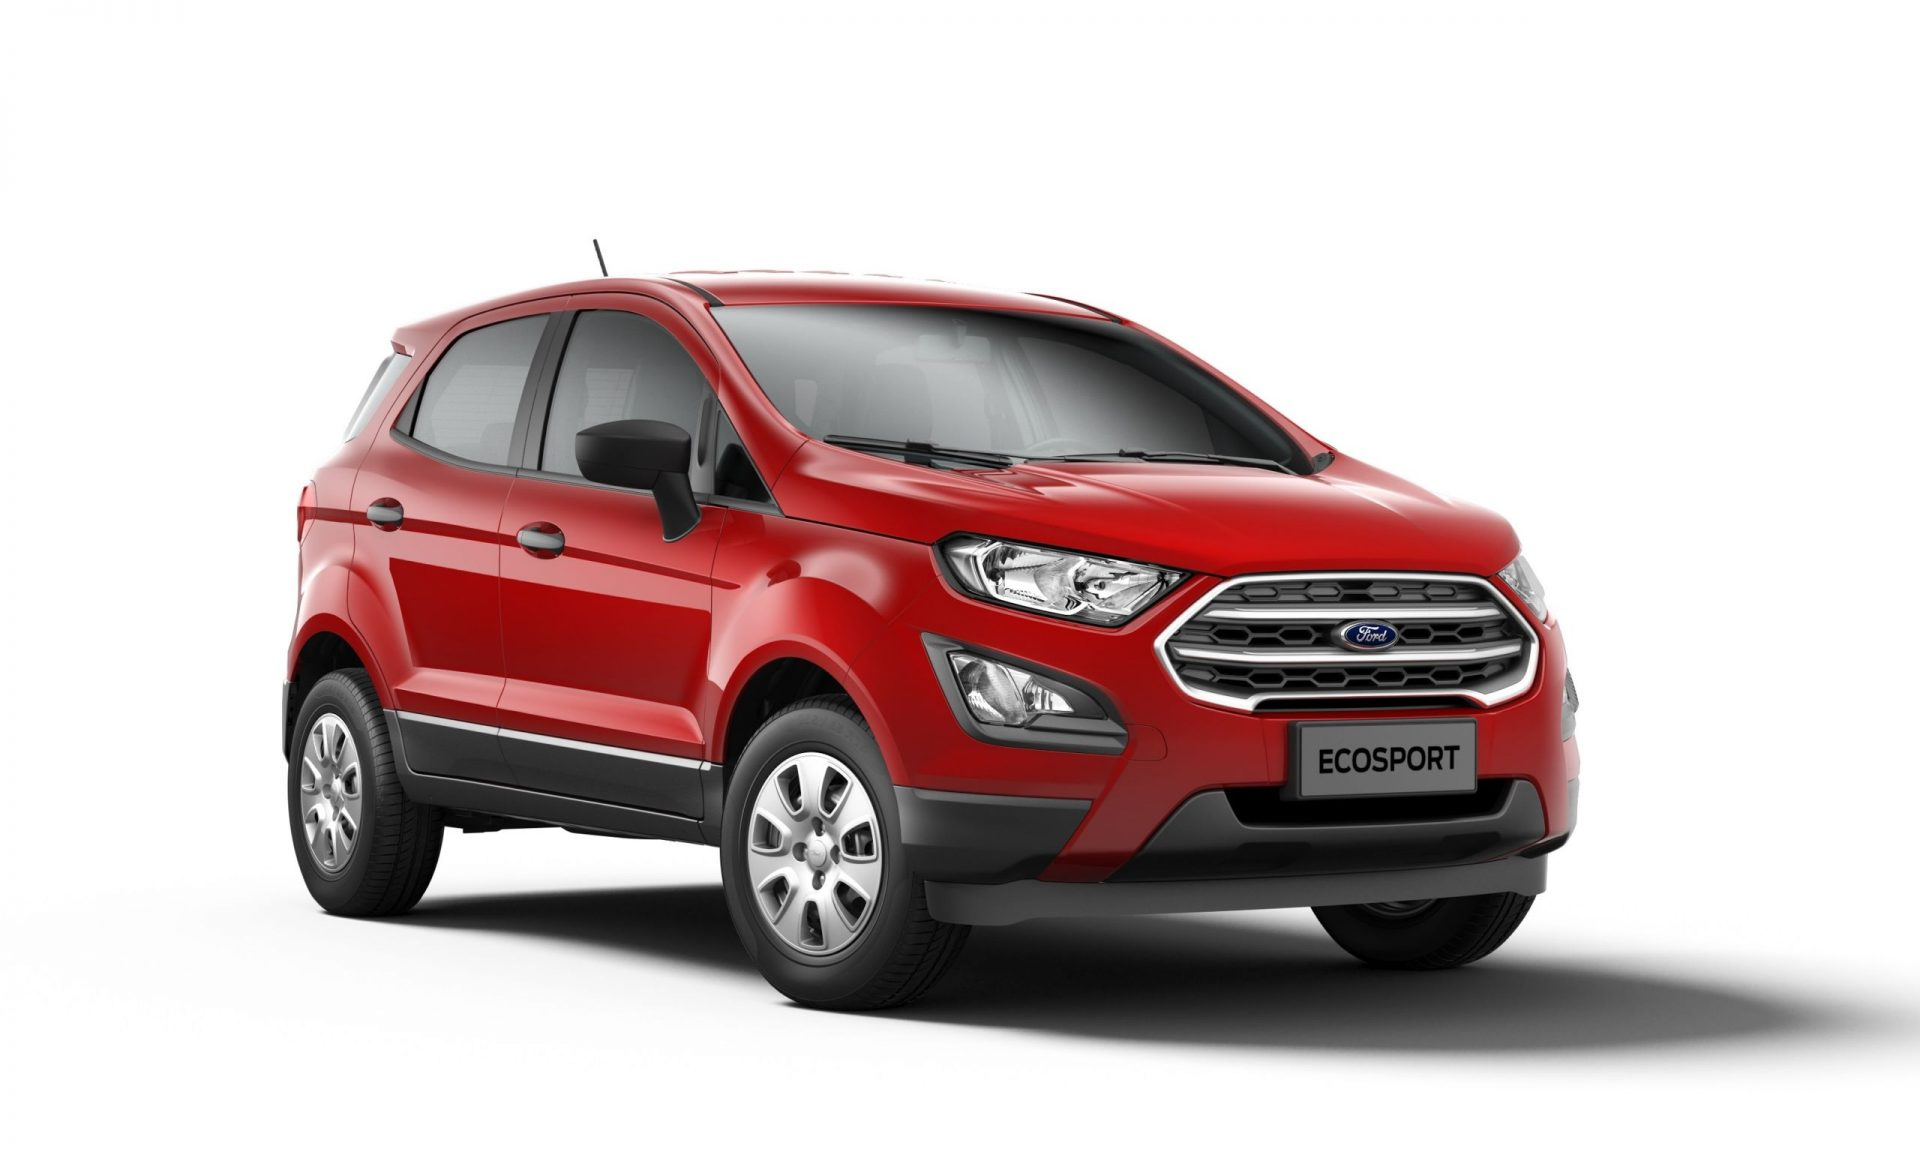 foto legenda 03 coluna 0718 ecosport 1.5 se direct